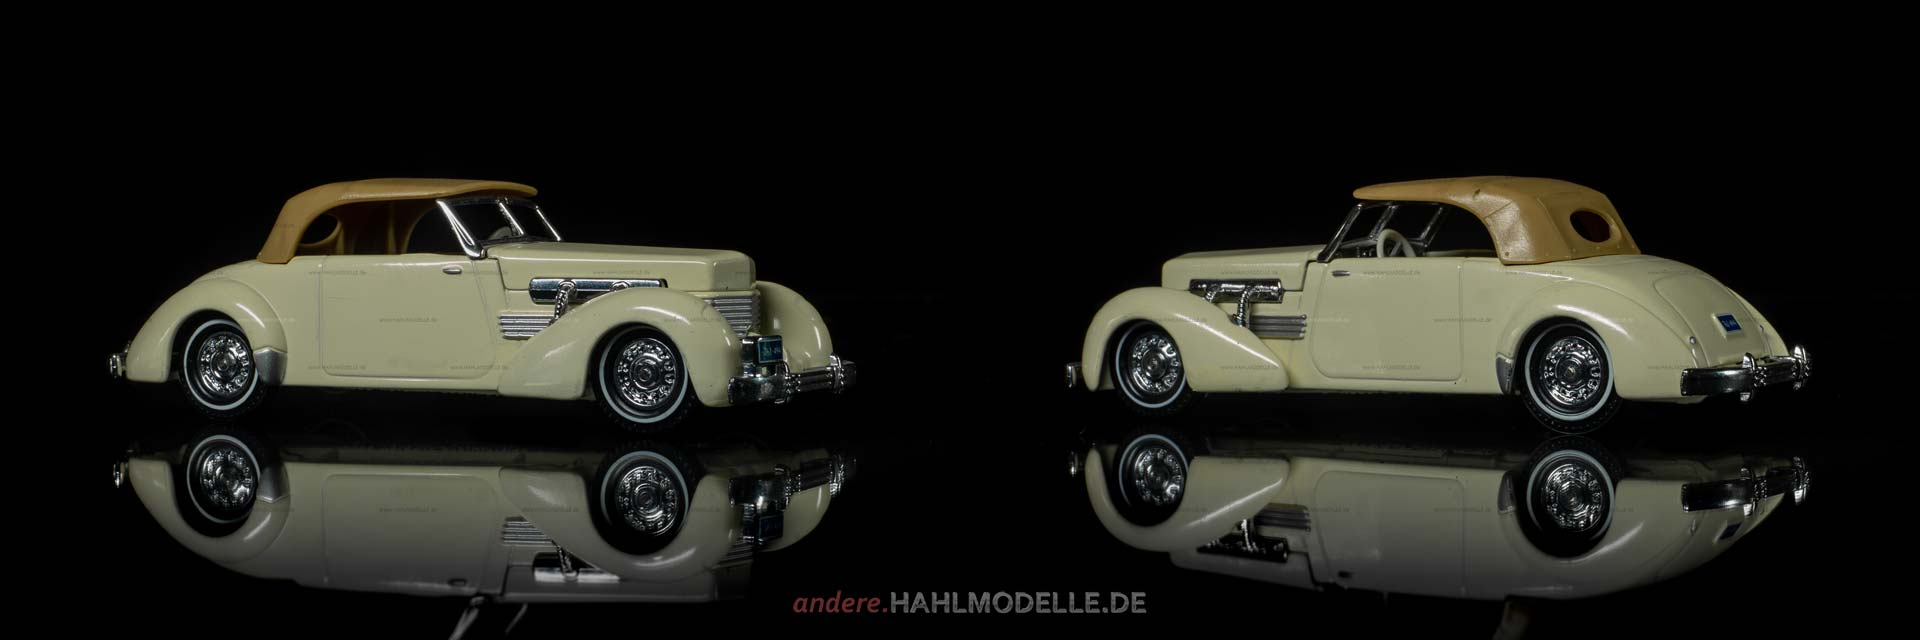 Cord 812 | Cabriolet | Lesney Products & Co. Ltd., Matchbox – Models of Yesteryear | 1:43 | www.andere.hahlmodelle.de